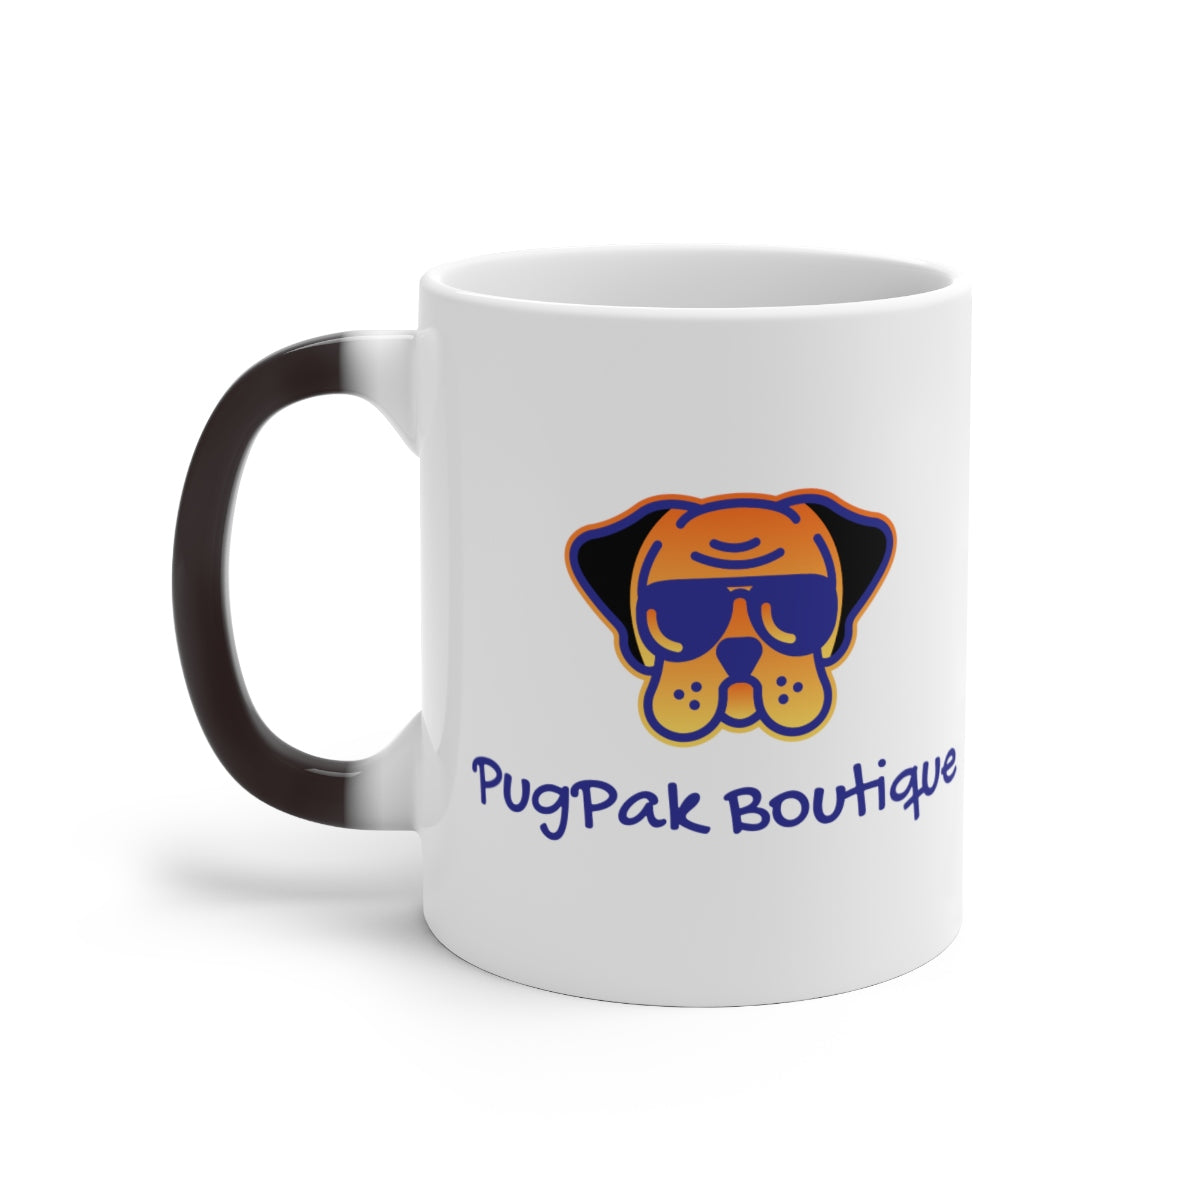 Pug Pak Color Changing Mug